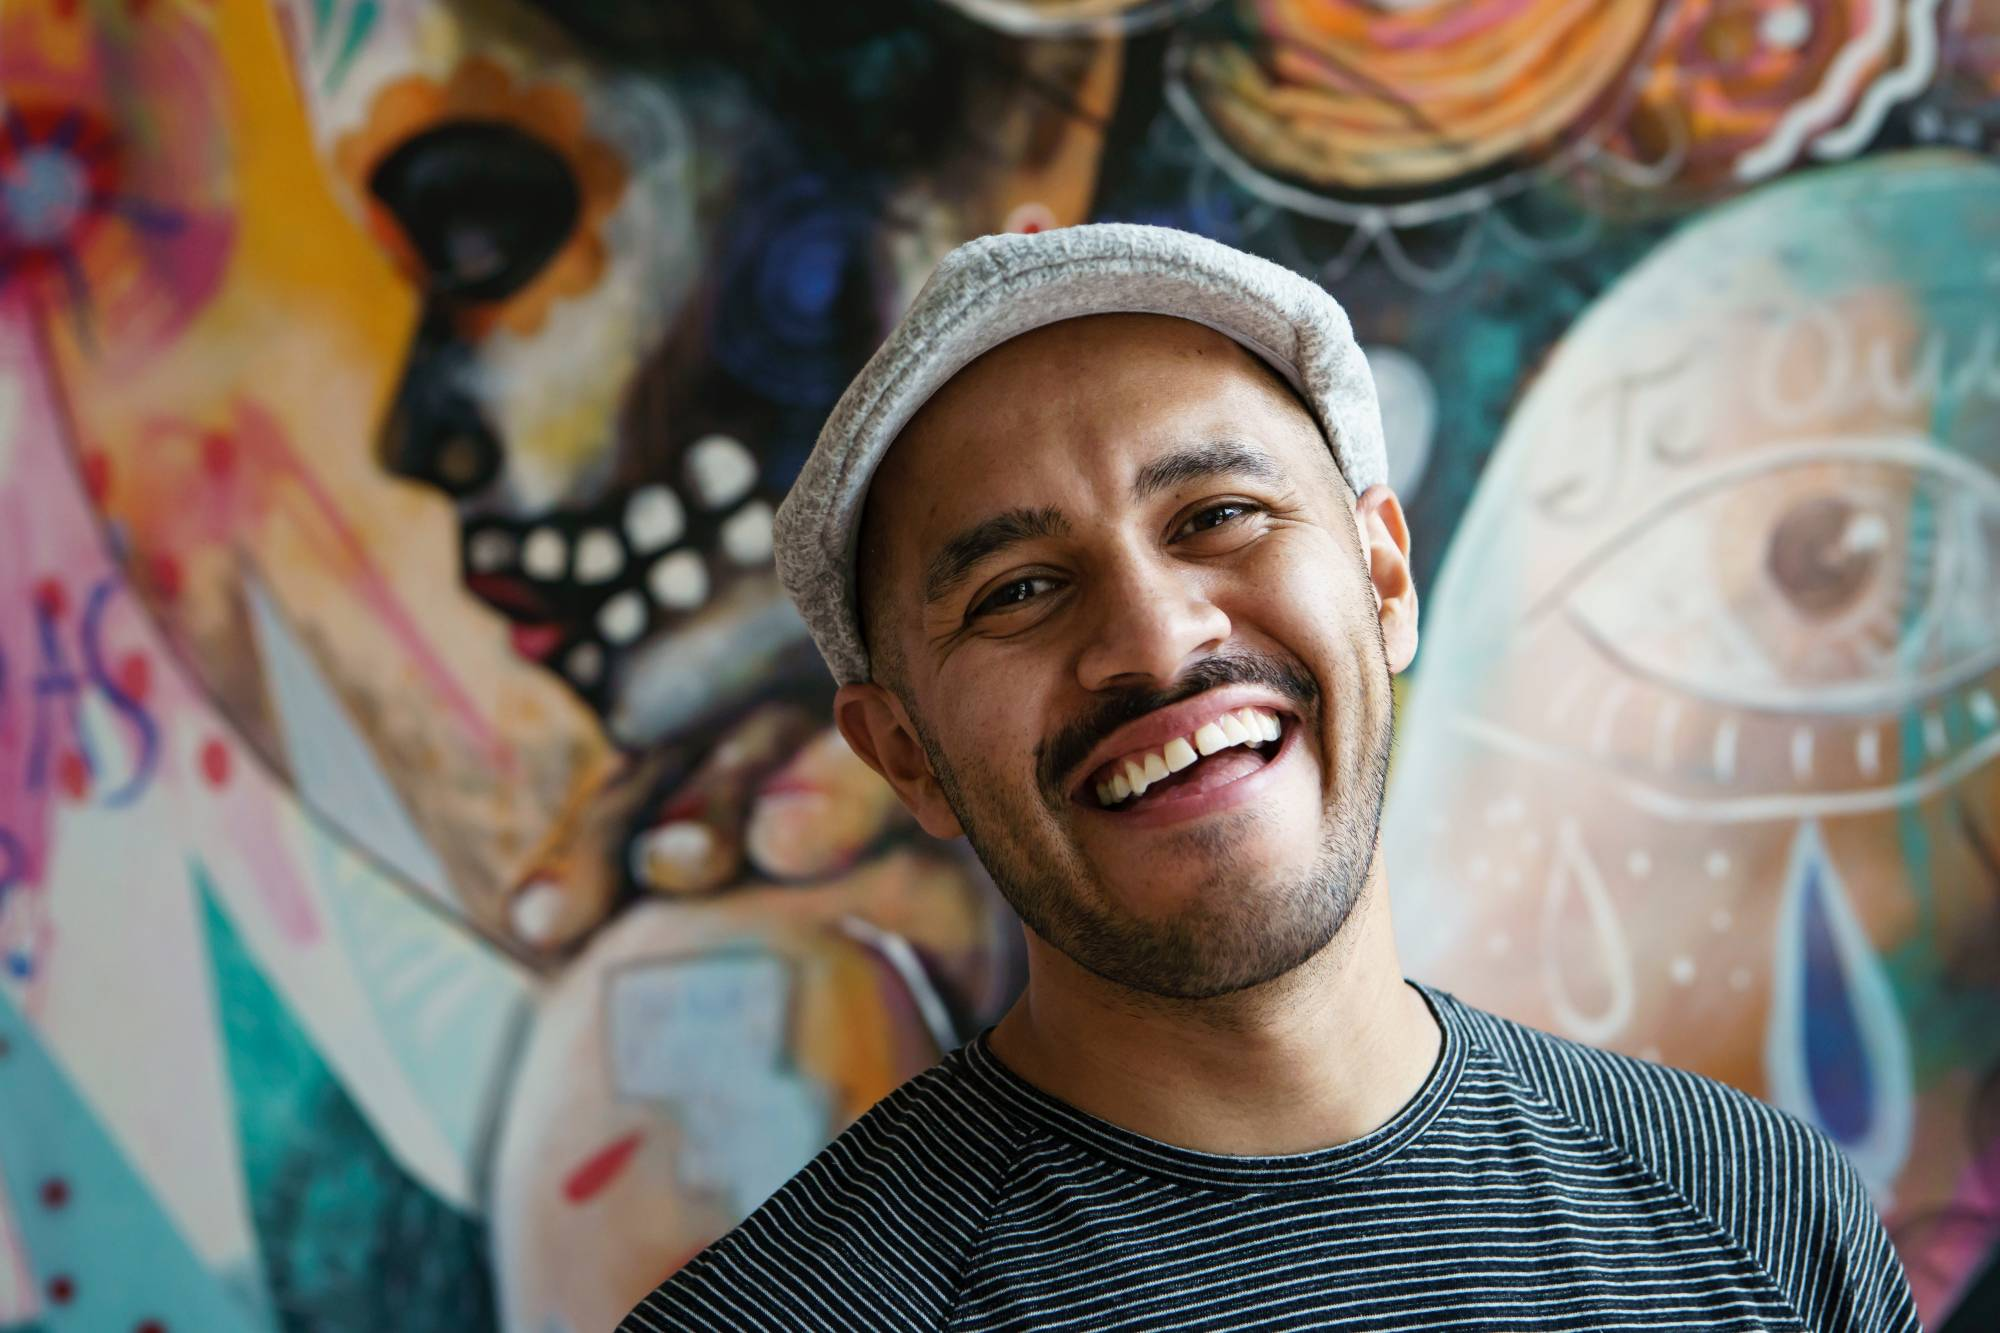 A photo of muralist and performer Armando Silva. Background is a colorful mural.